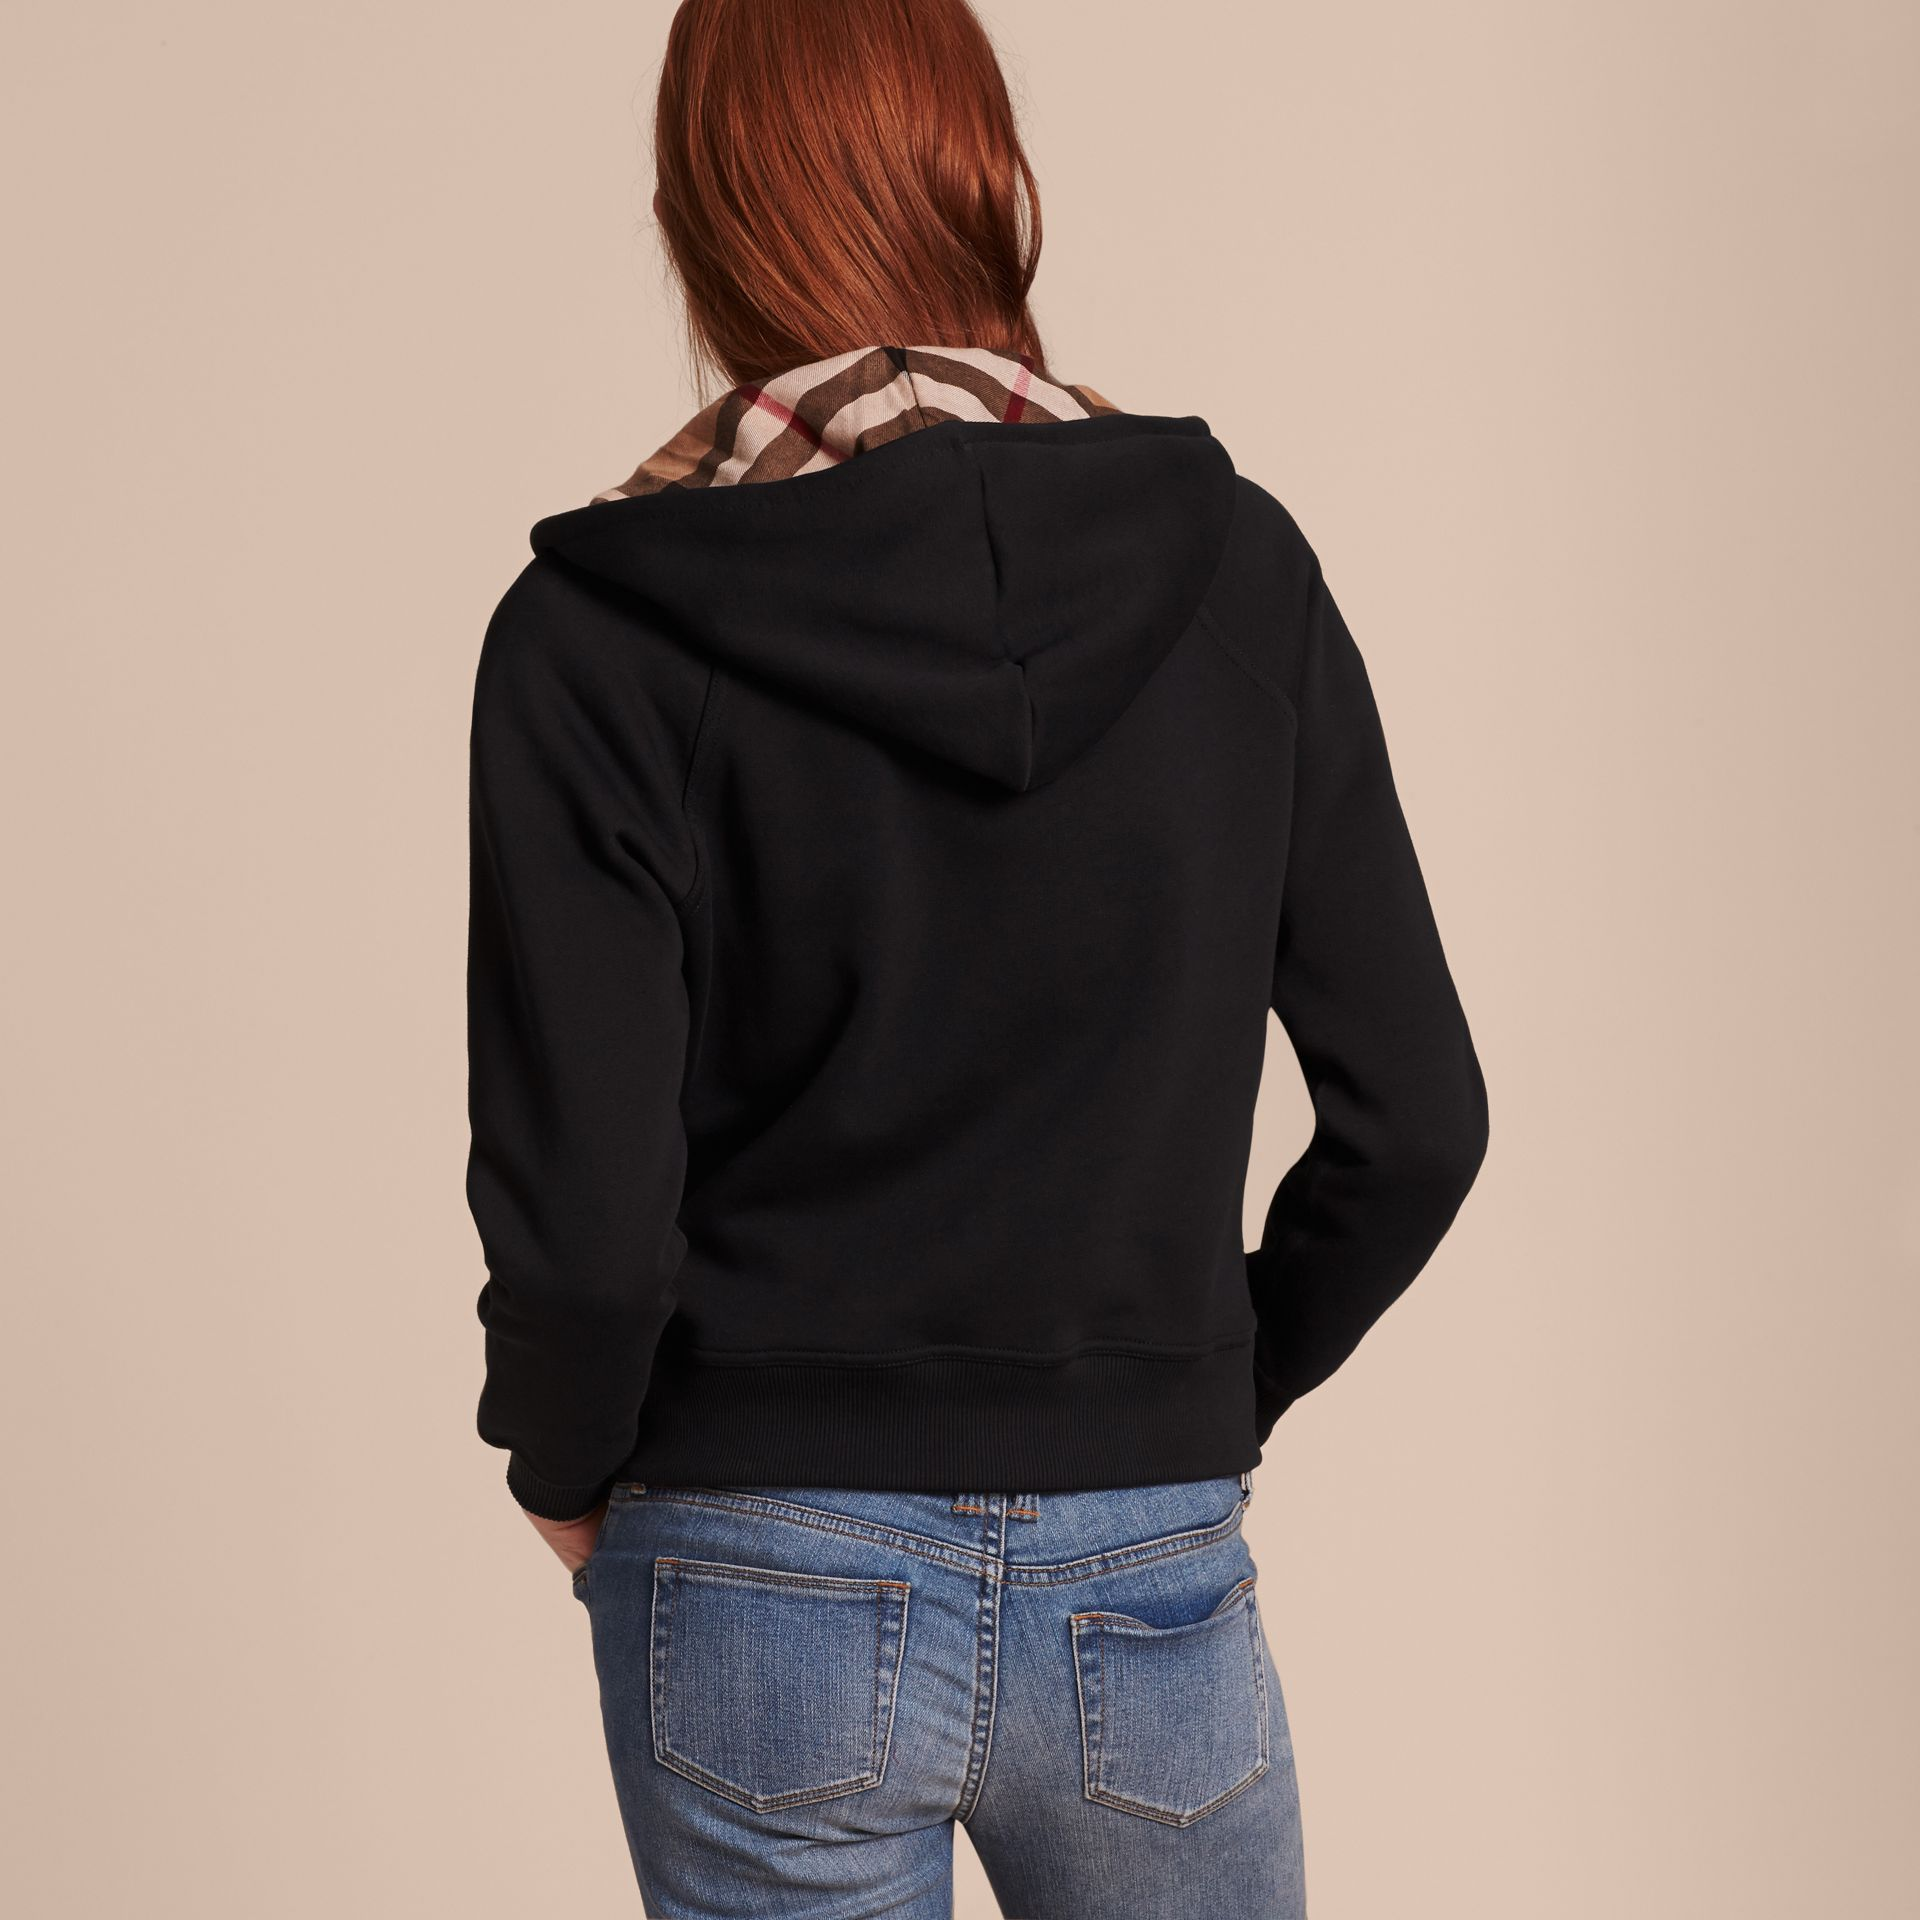 Black Hooded Zip-front Cotton Blend Sweatshirt Black - gallery image 3